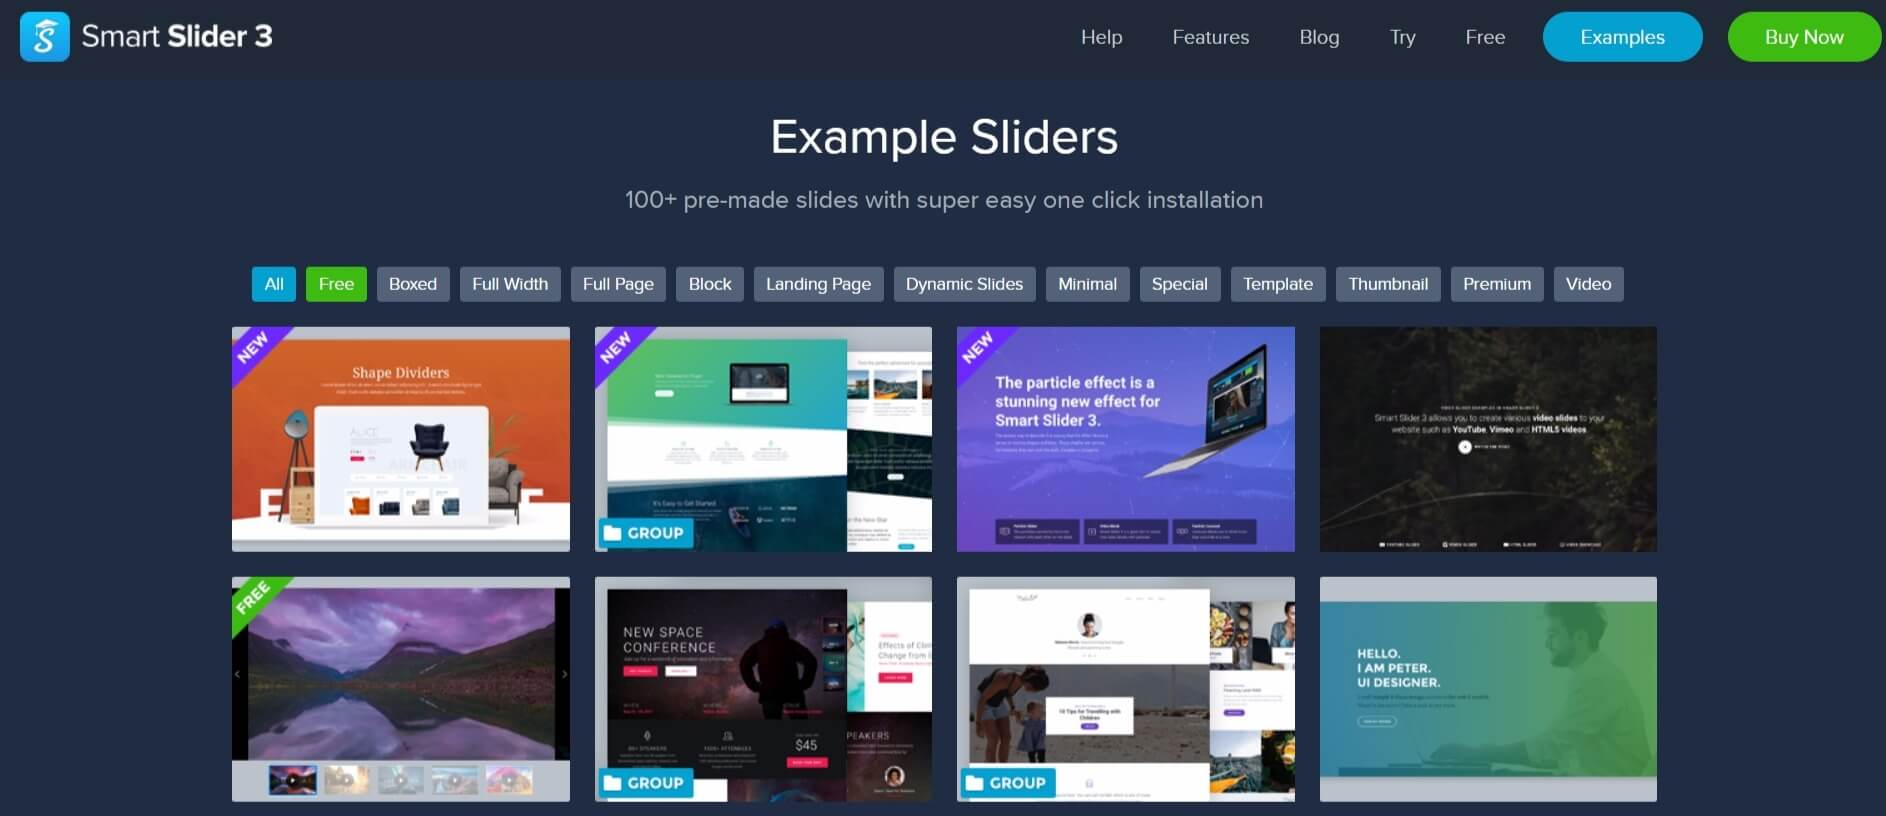 The Smart Slider 3 slider examples page